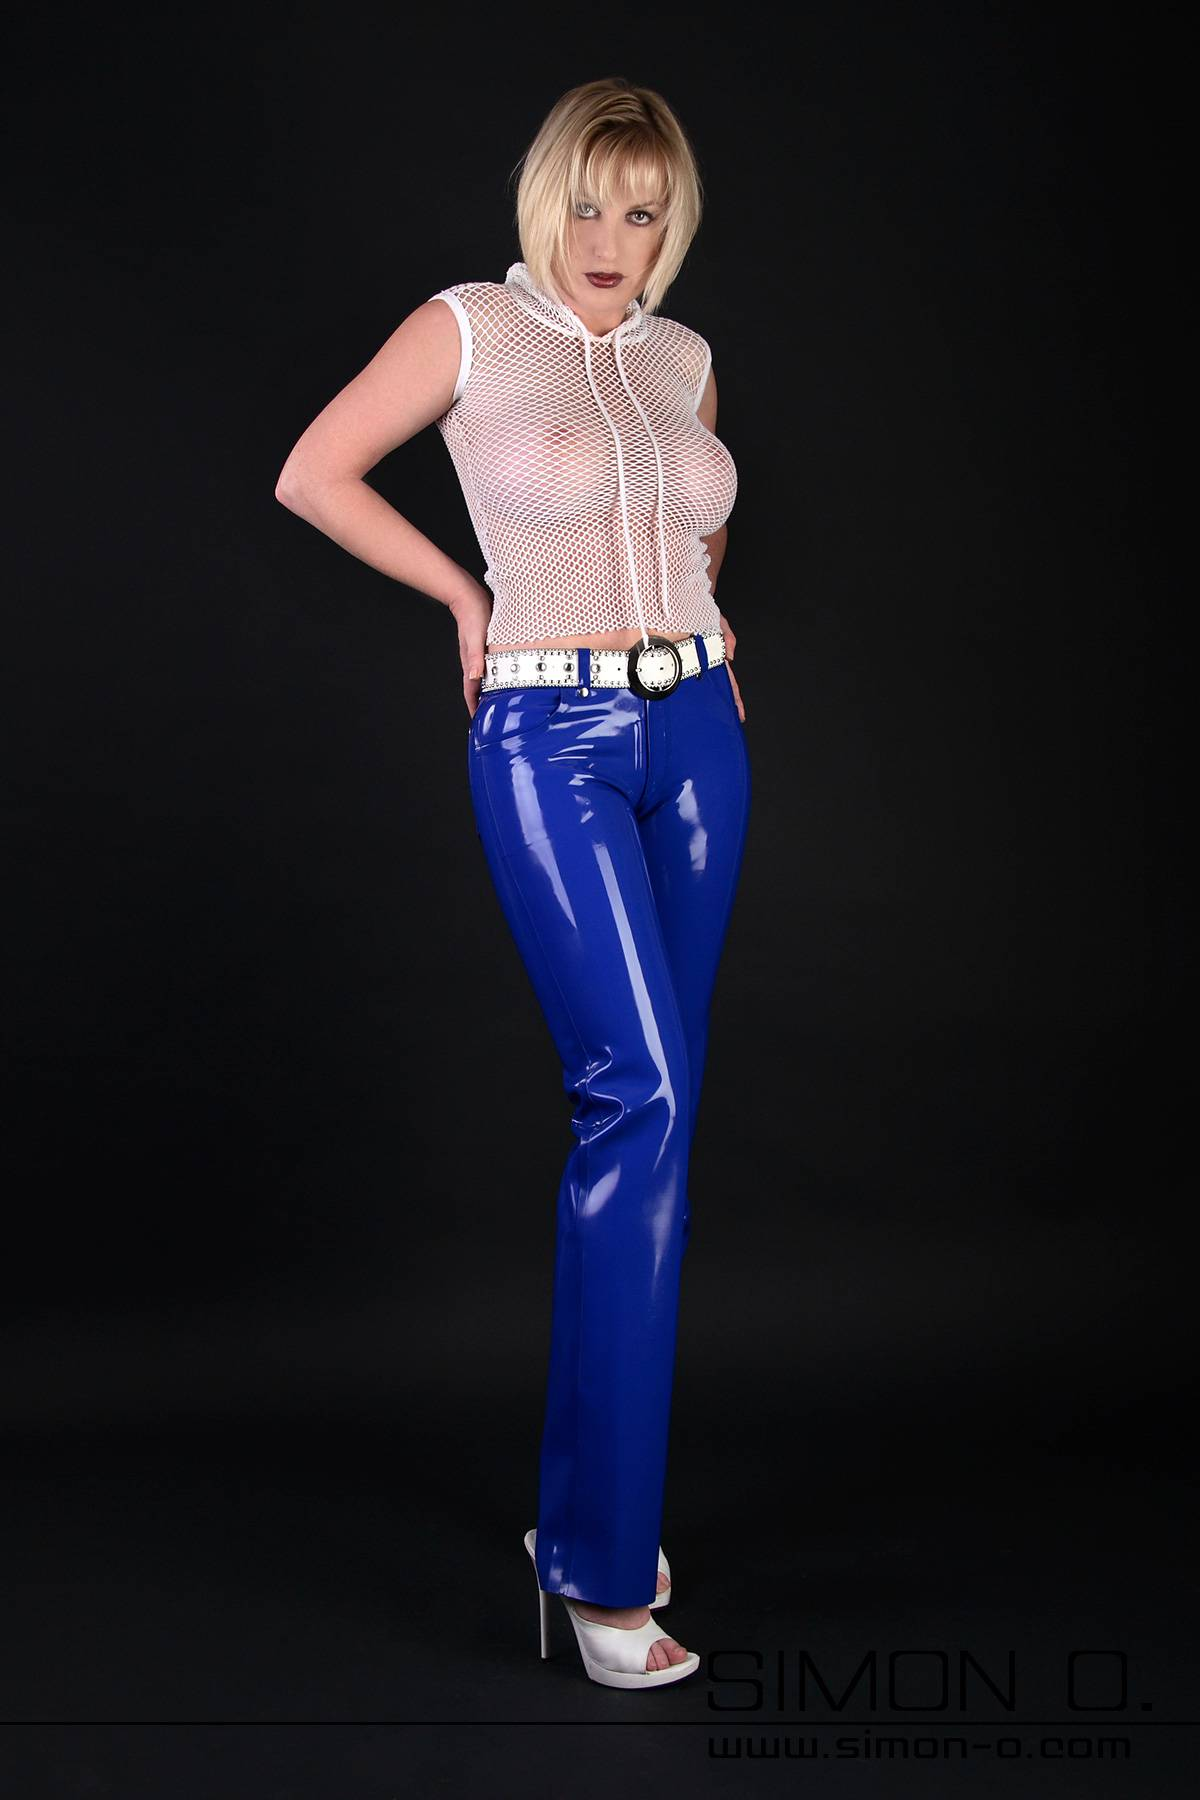 Latex Jeans mit Taschen - Regular Fit Latex Jeans regualr fir mit geraden Bein aus Latex in 0.4mm - 0,5 mm Stärke gefertigt. Alle Nähte von den Taschen vorne …